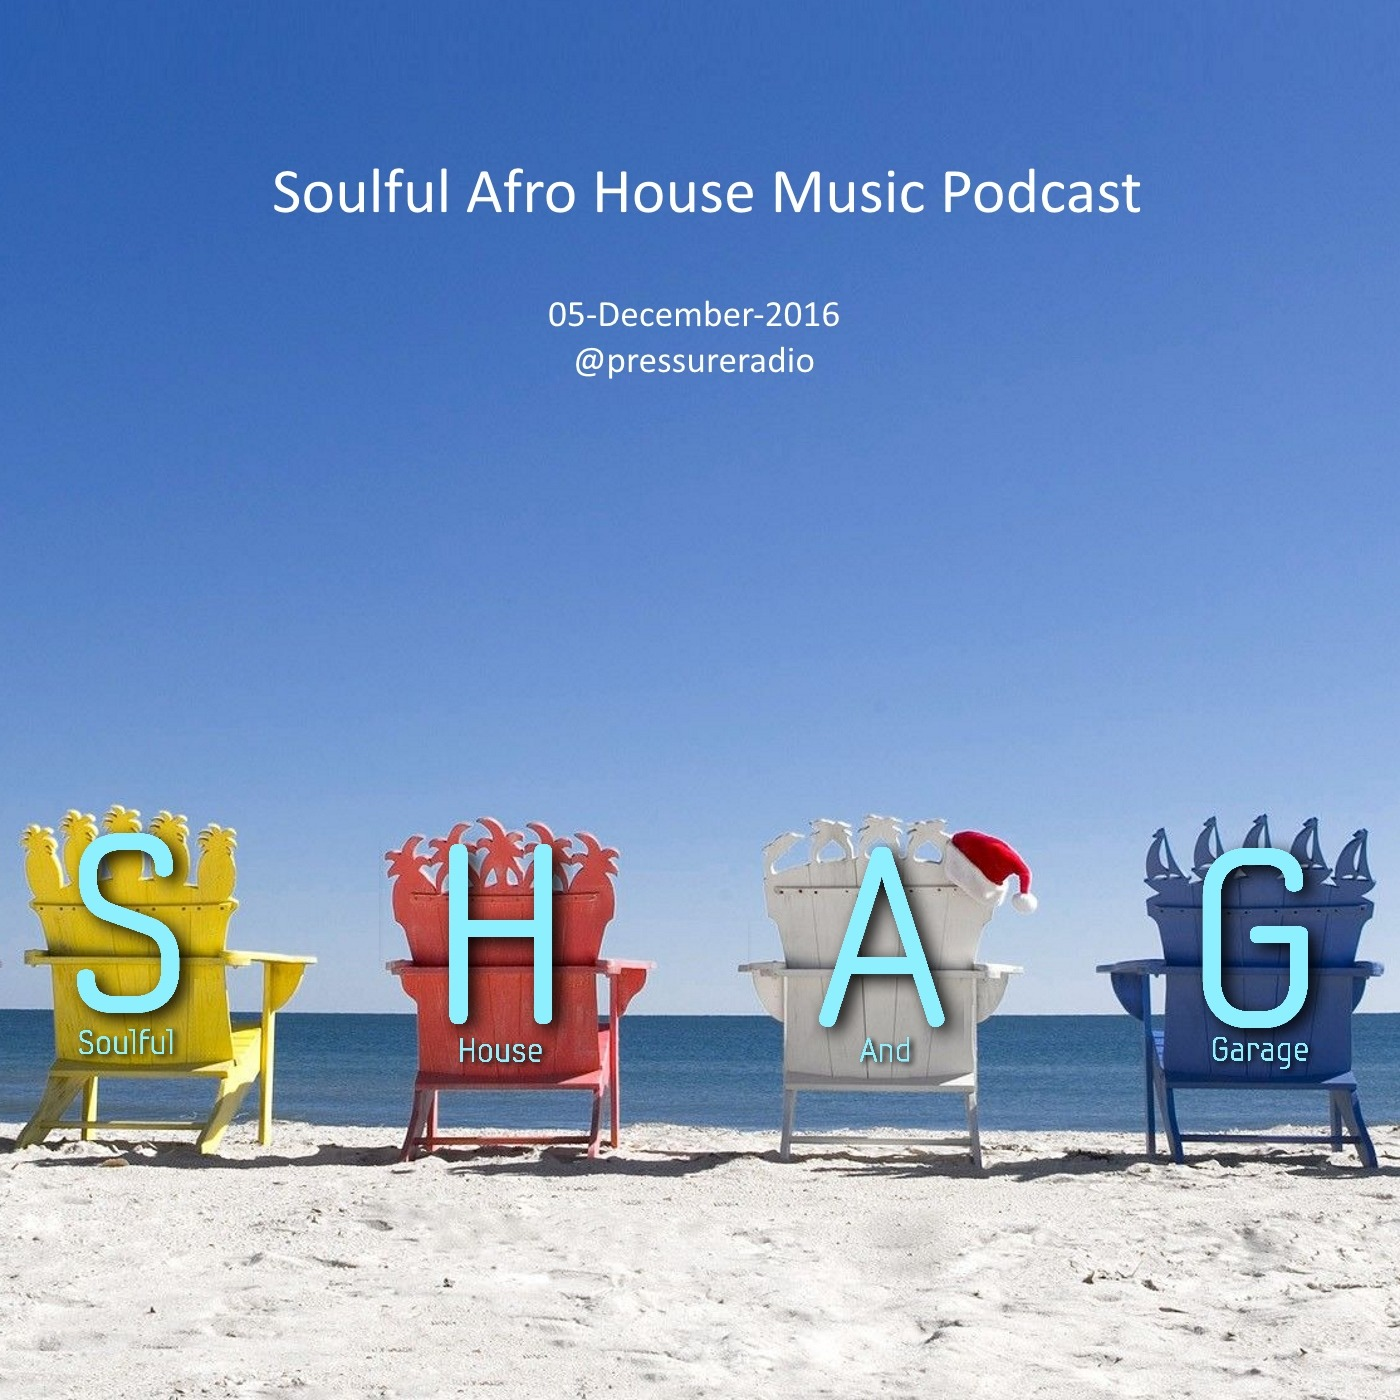 Shag soulful afro house mix podcast 05 dec 16 djp 39 s s h for 90 s deep house music playlist